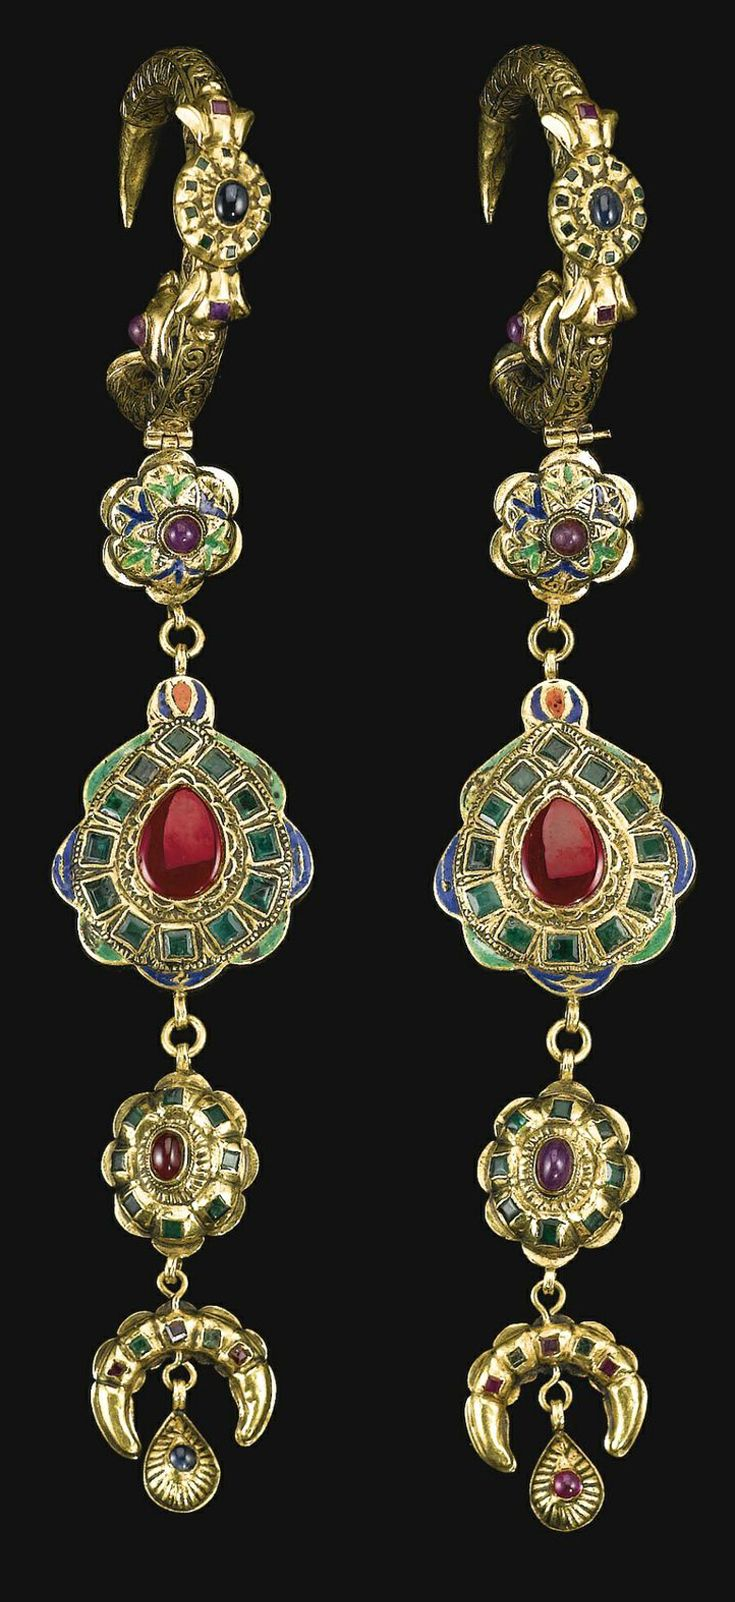 Morocco   Pair of gem-set gold 'Khros' earrings   18th century   Est. £40'000 - 60'000 together with the matching 'Lebba' necklace (Apr. '14)